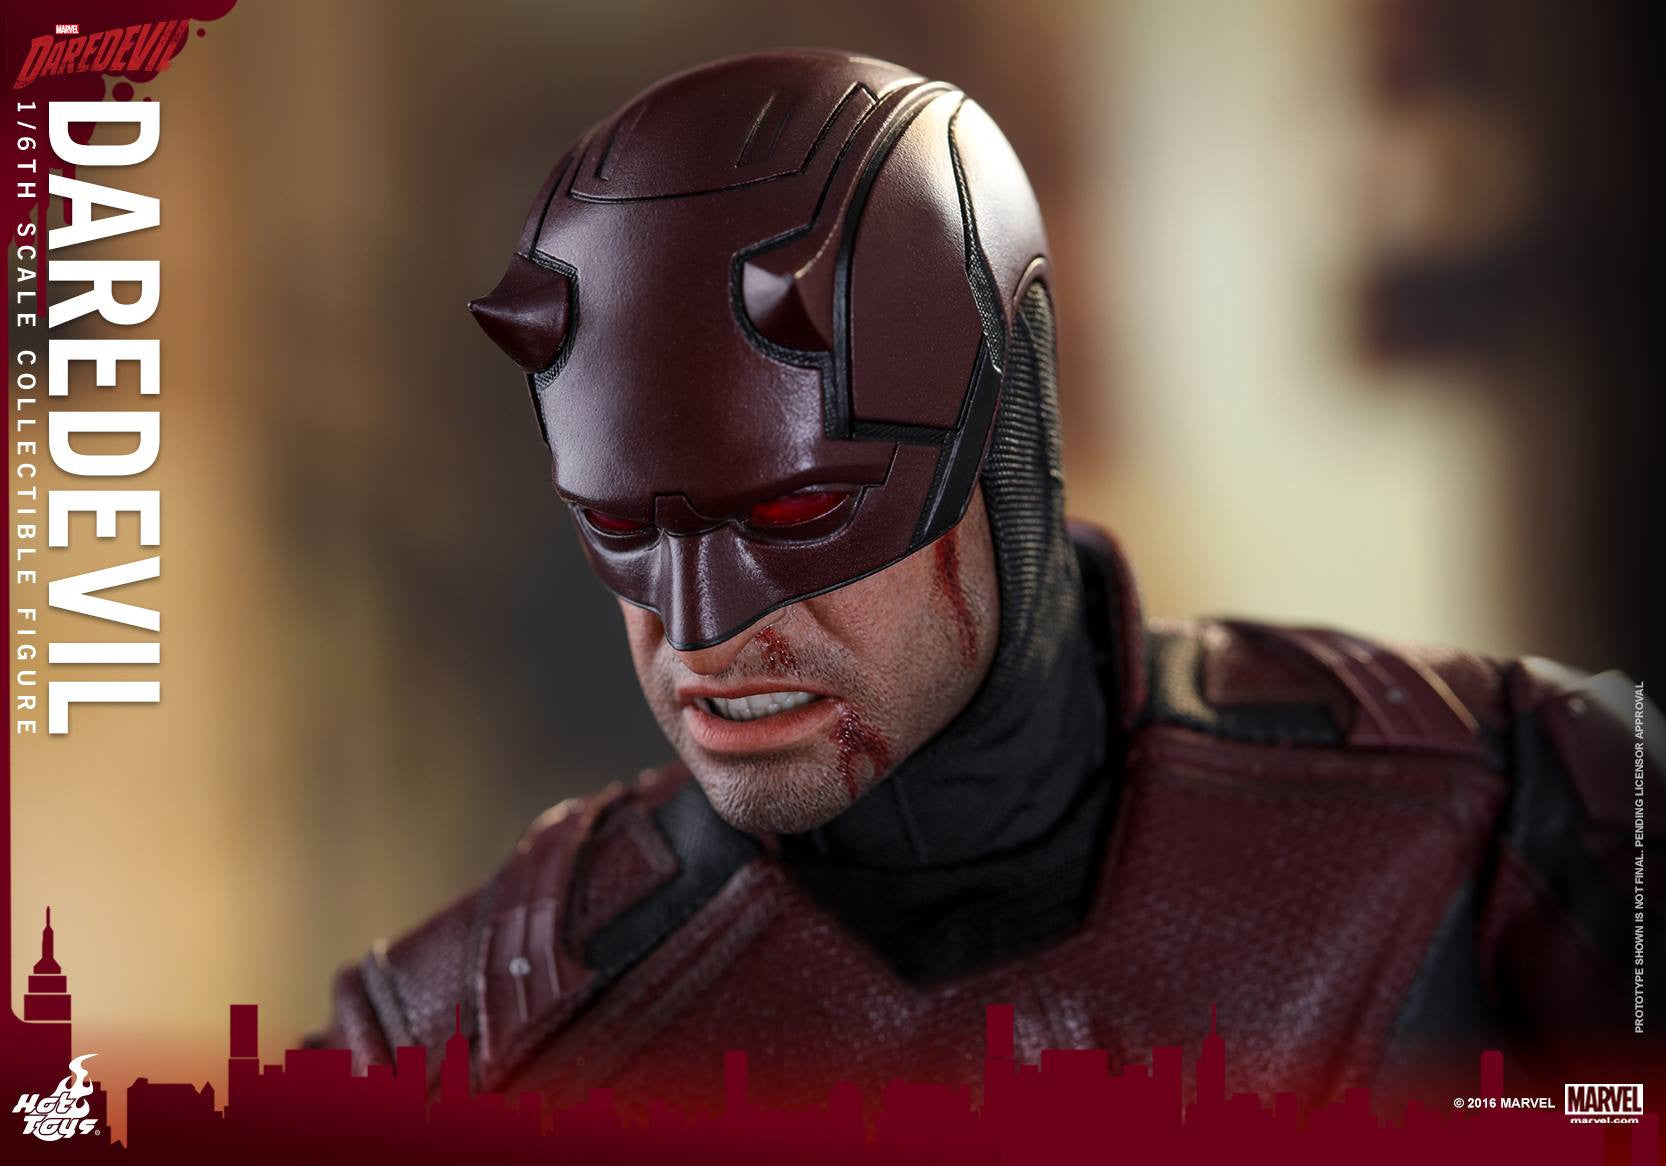 Hot Toys - TMS003 - Marvel's Daredevil - Daredevil - Marvelous Toys - 17